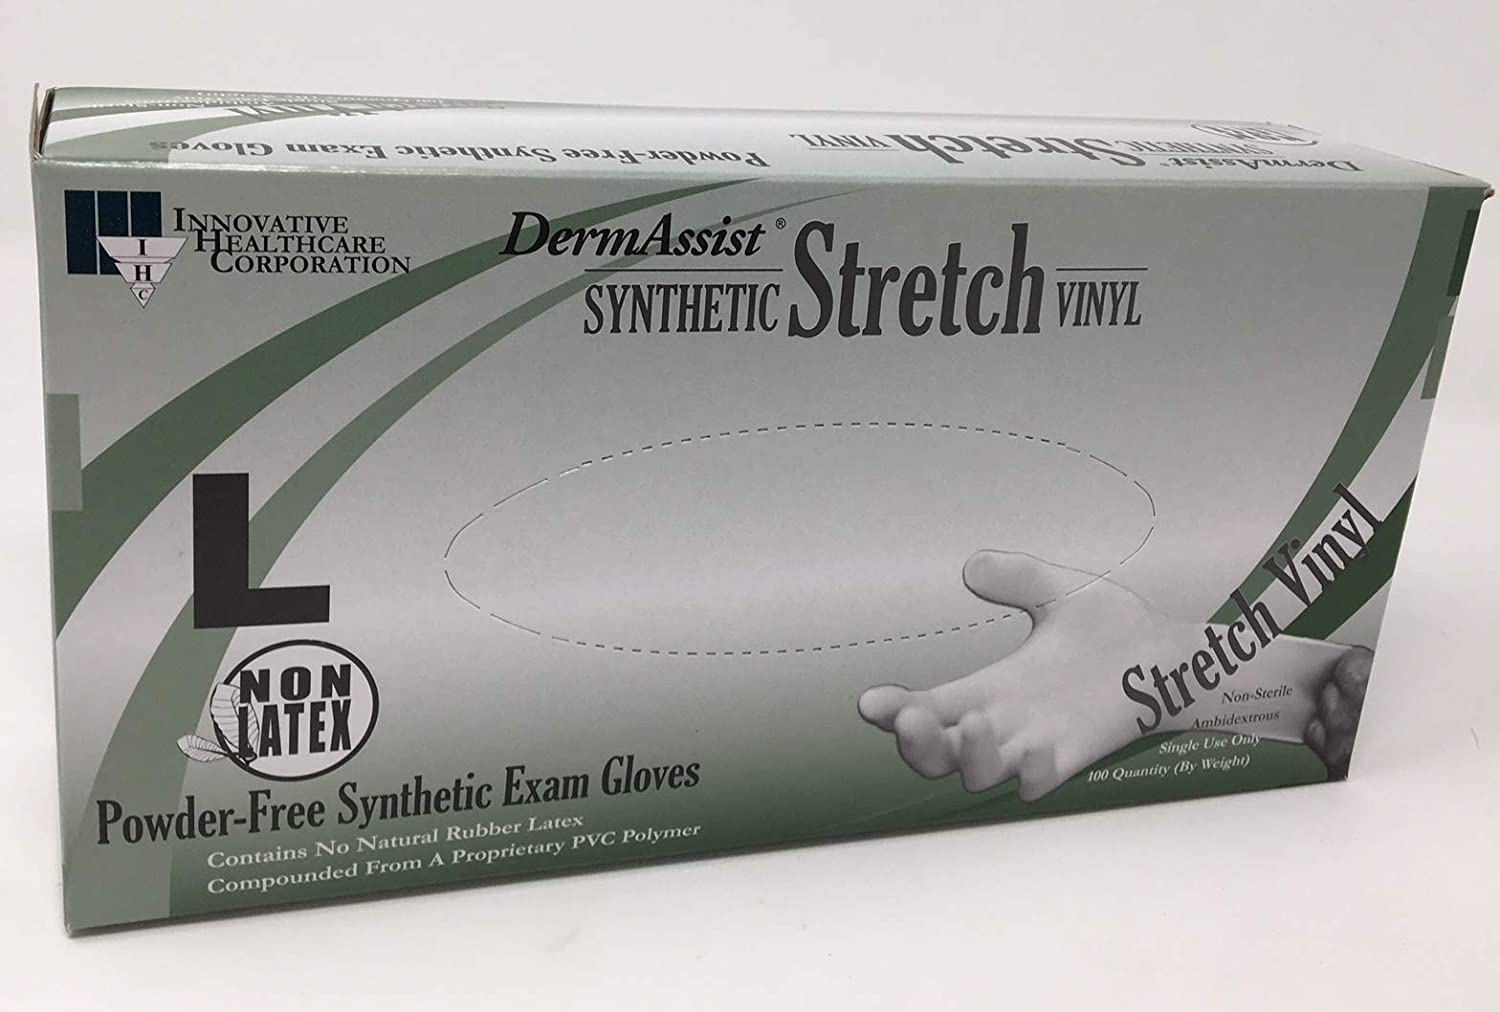 DermAssist Synthetic Stretch Vinyl Gloves - Size: Large (Box of 100) Powder-Free Exam Gloves #162300